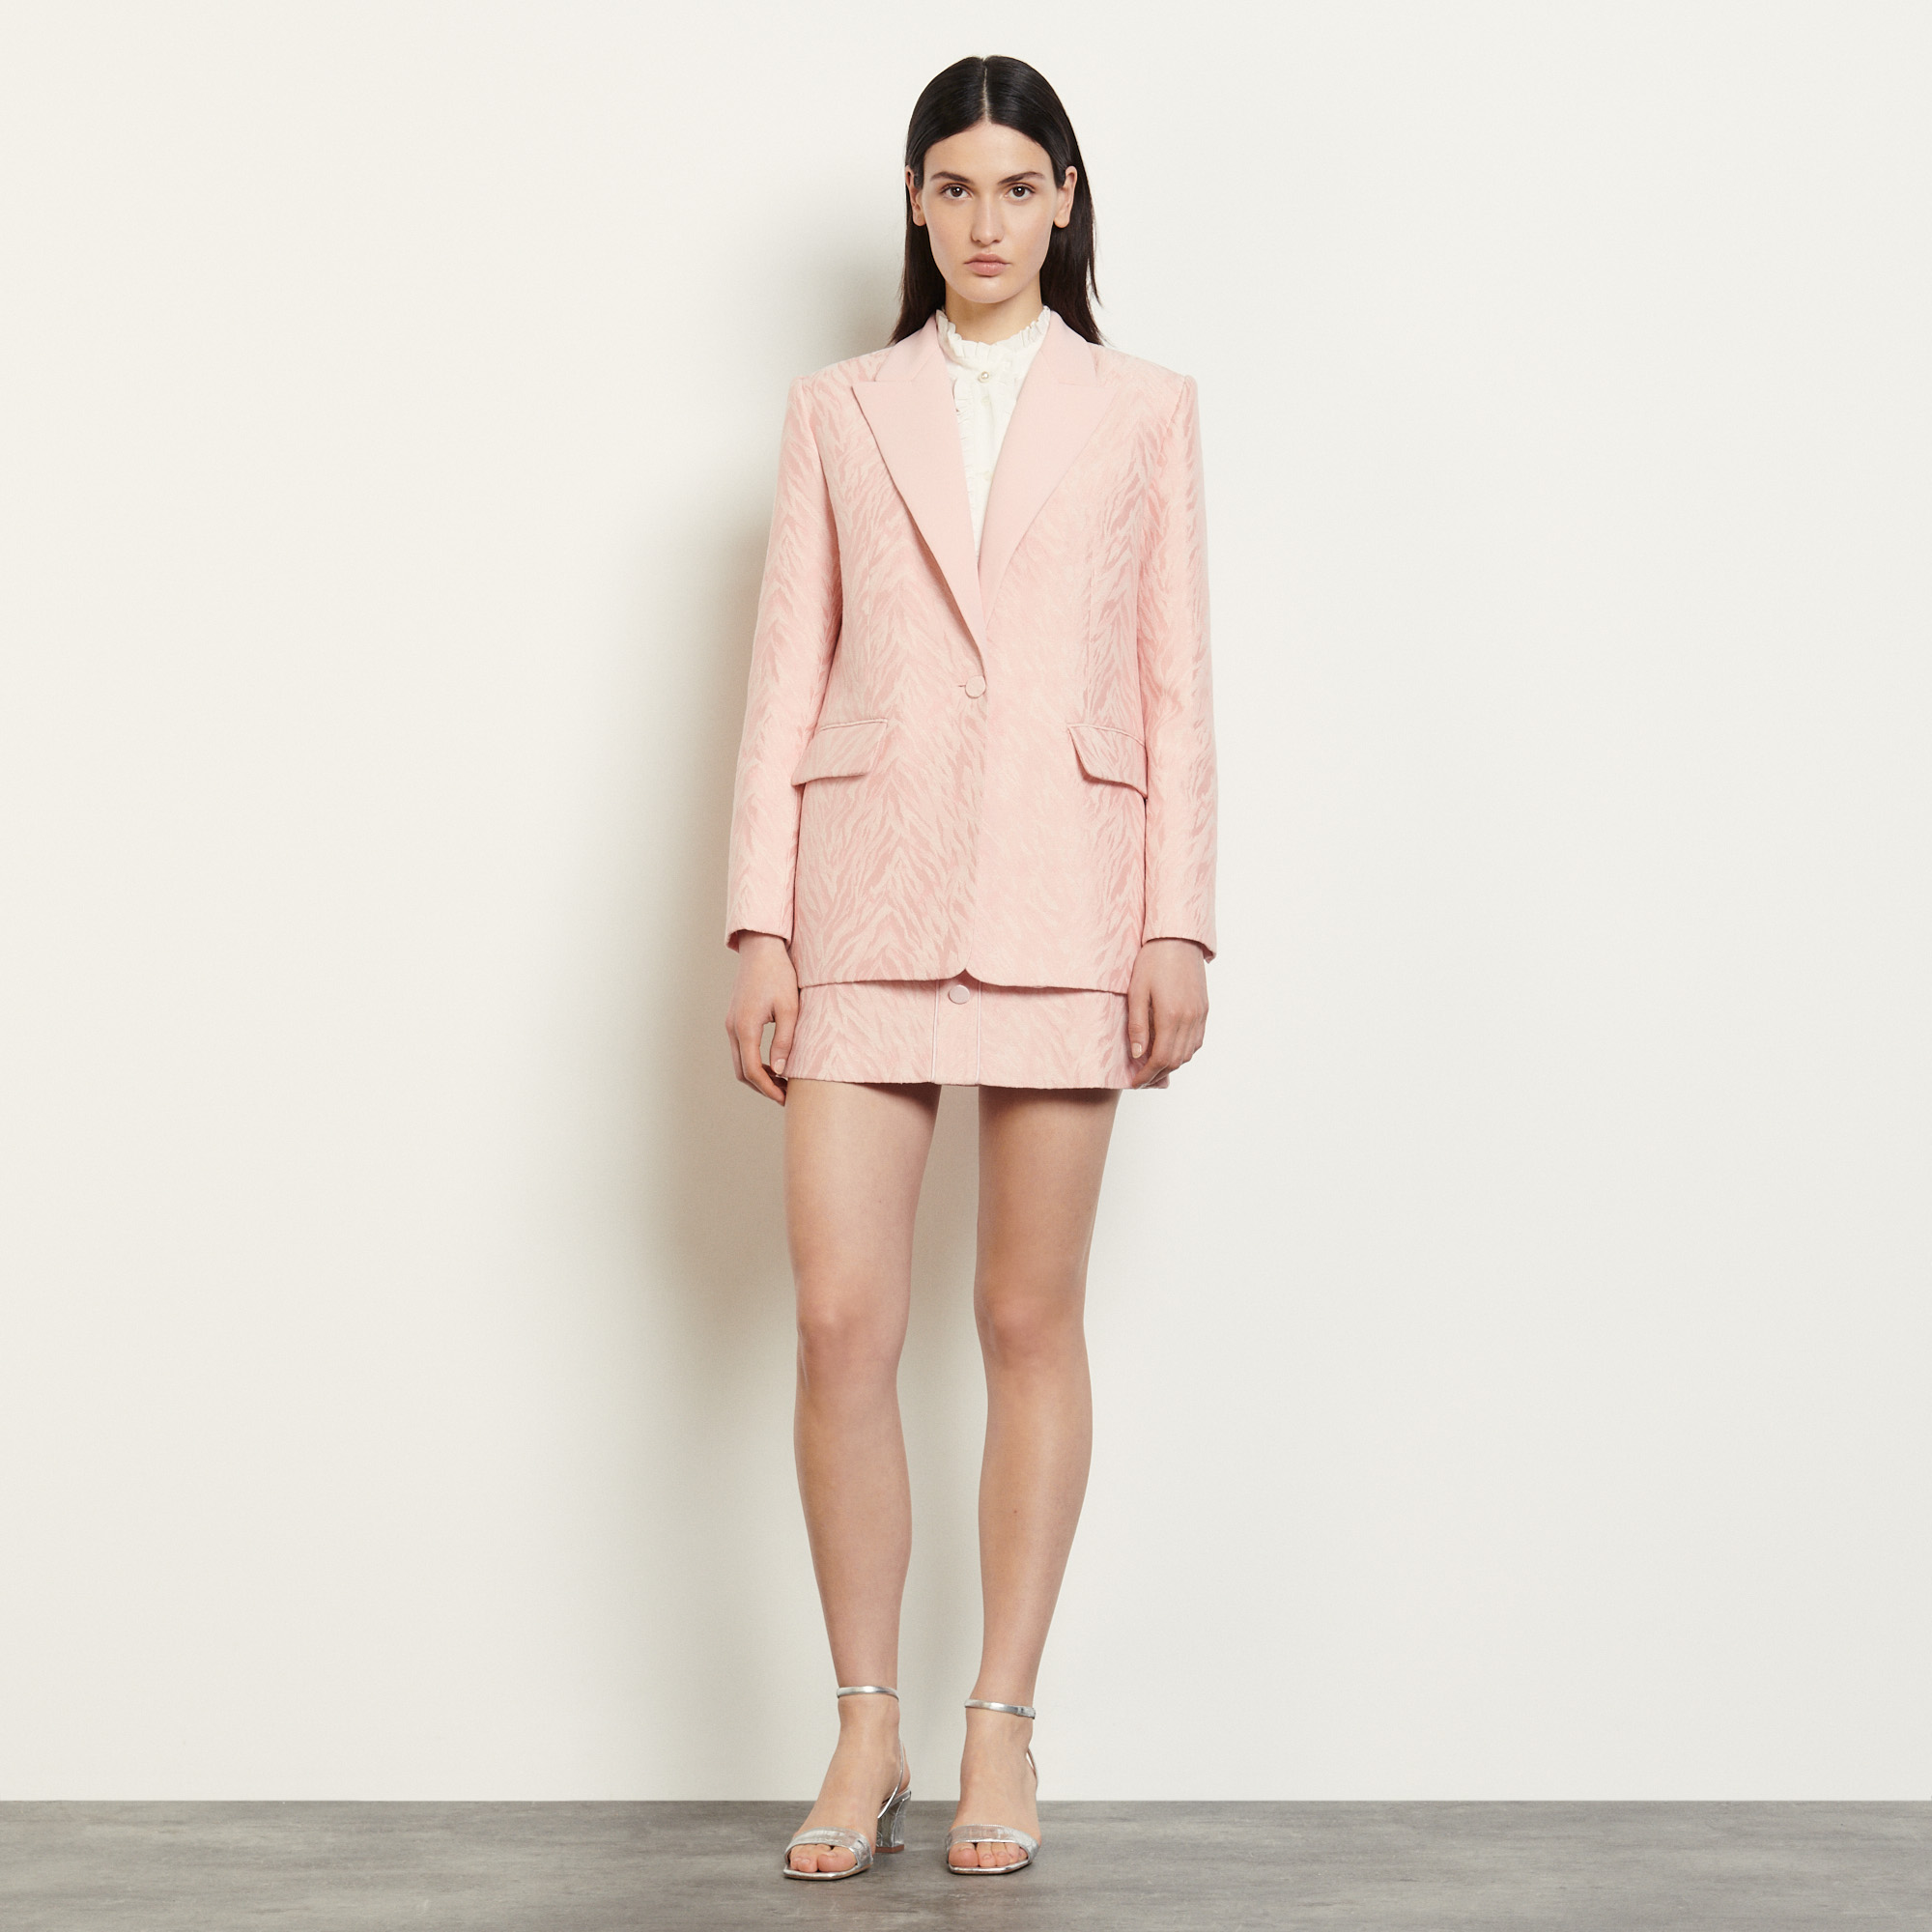 Tailored jacket in striped jacquard  - Pink